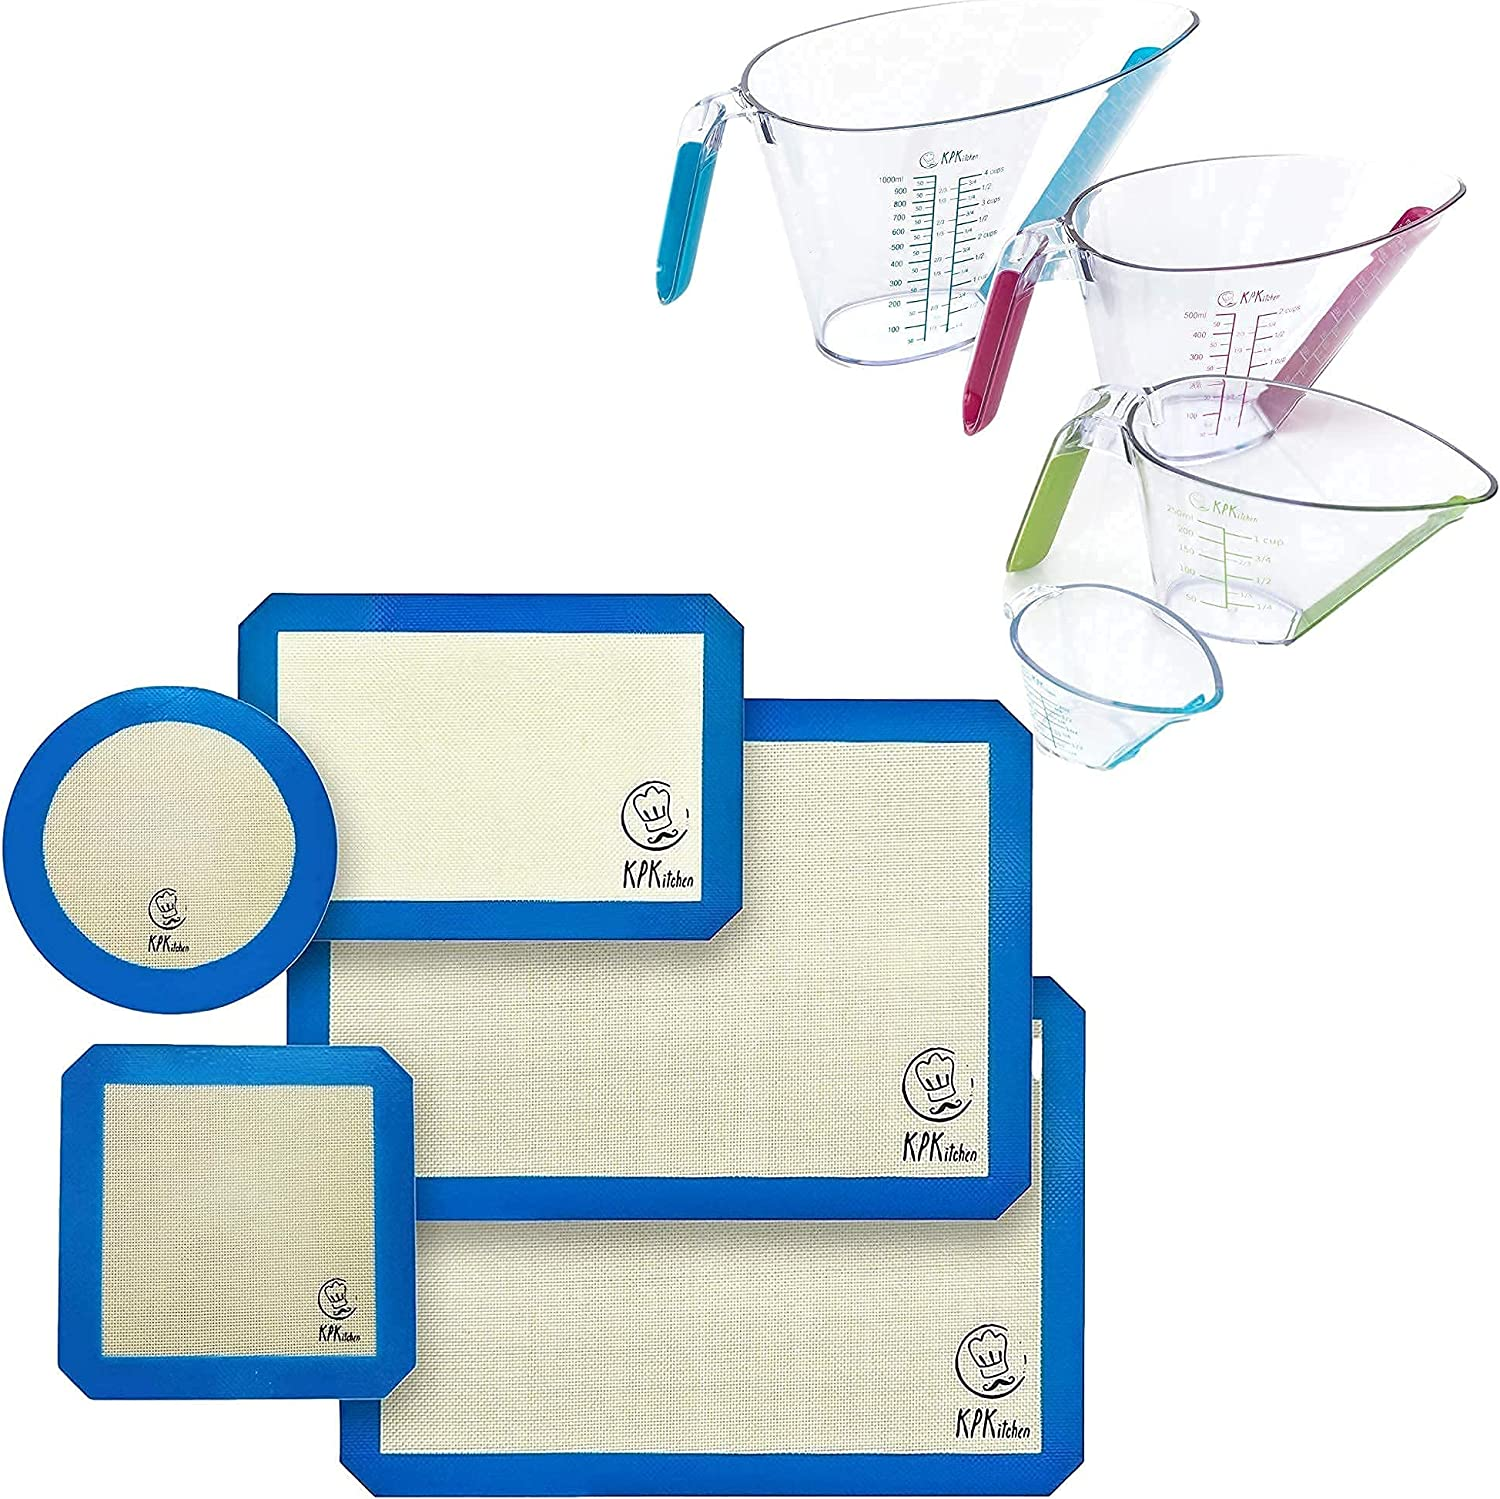 KPKitchen Silicone New York Mall Baking Mats Set of 5 Liquid and NEW Measu 4-Piece